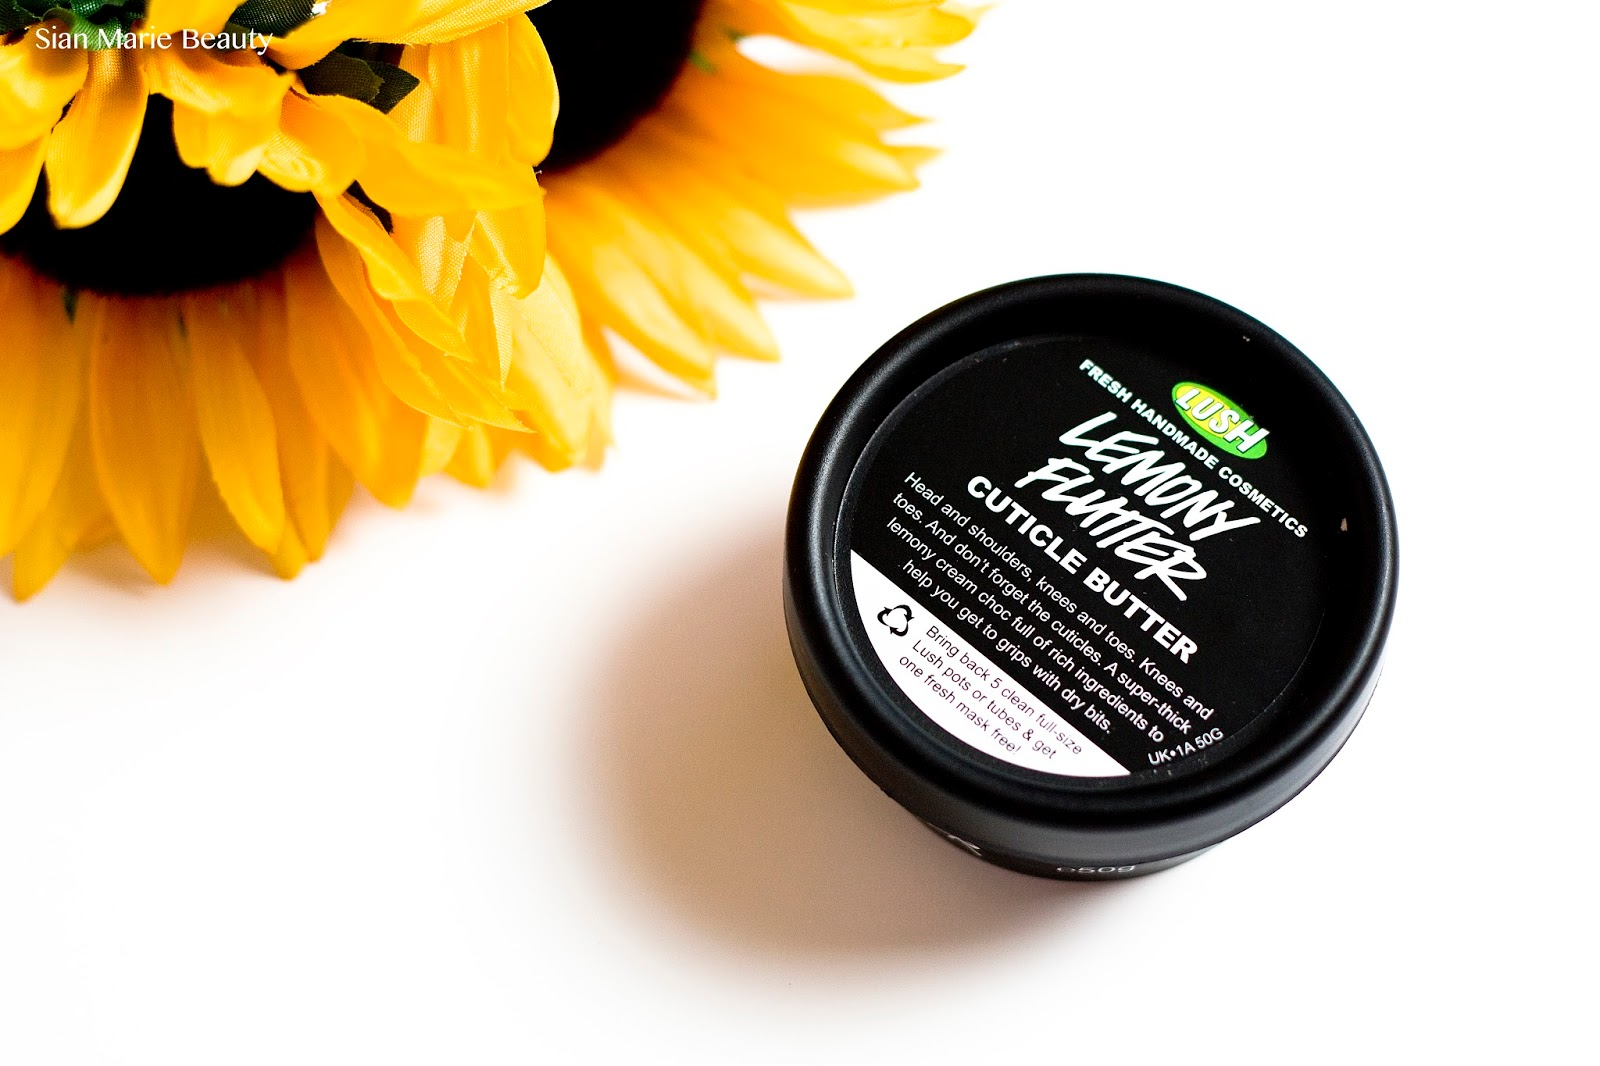 Lush Lemony Flutter Cuticle Review on Sian Marie Beauty